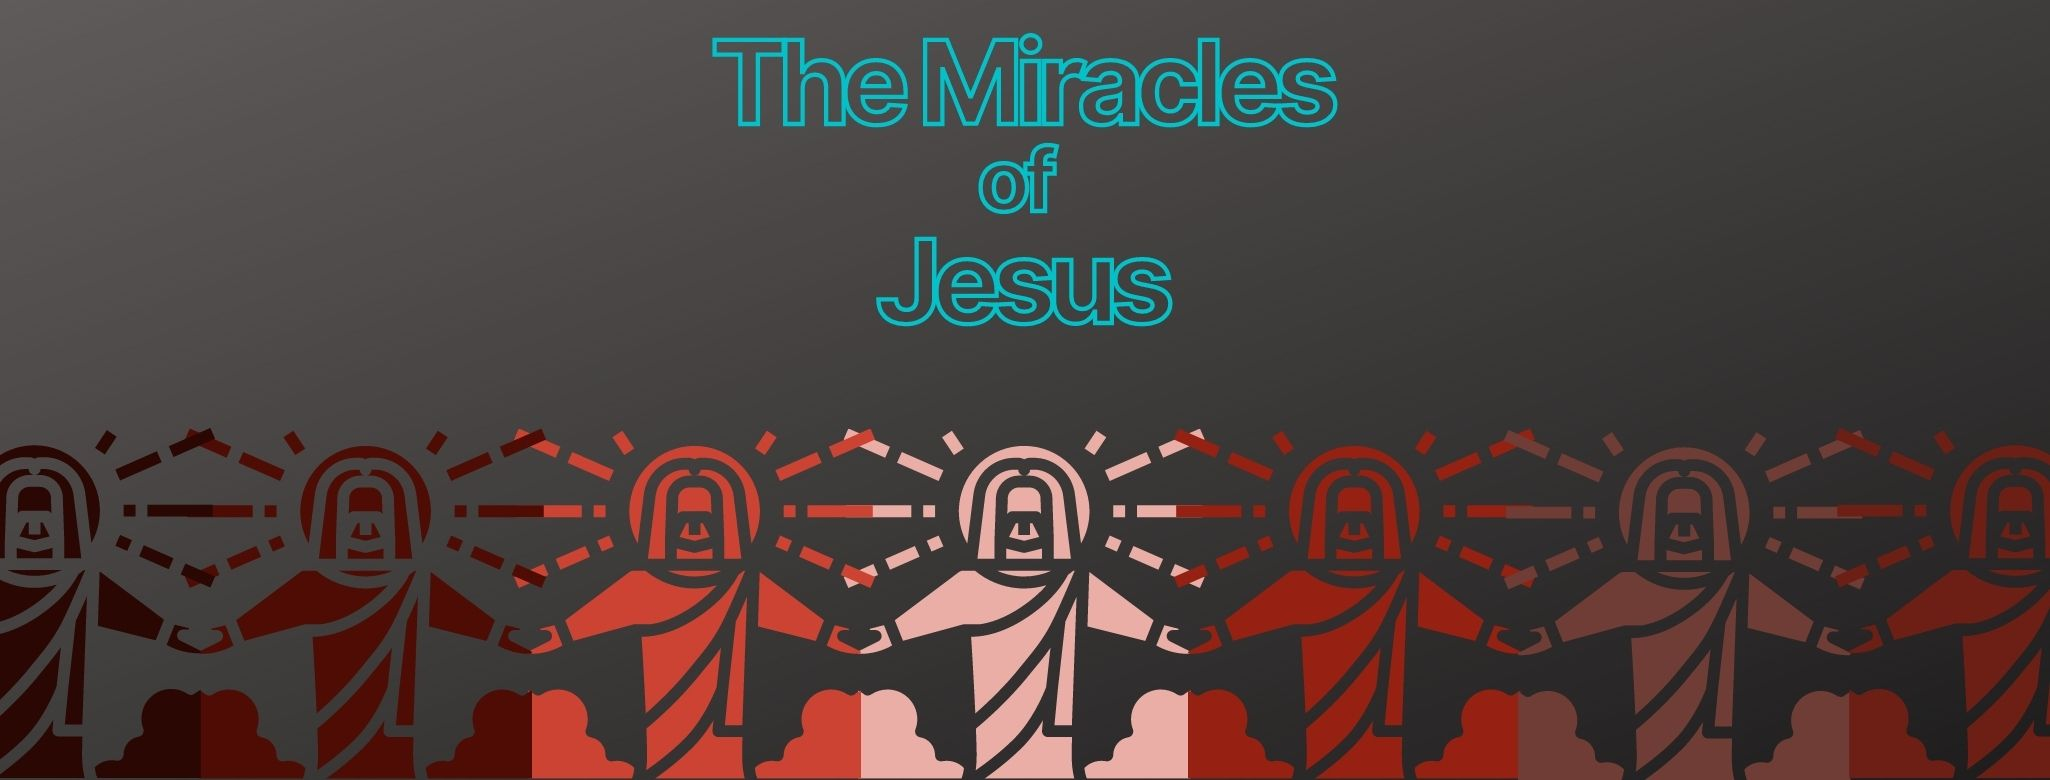 Miracles-of-Jesus-Facebook-Cover